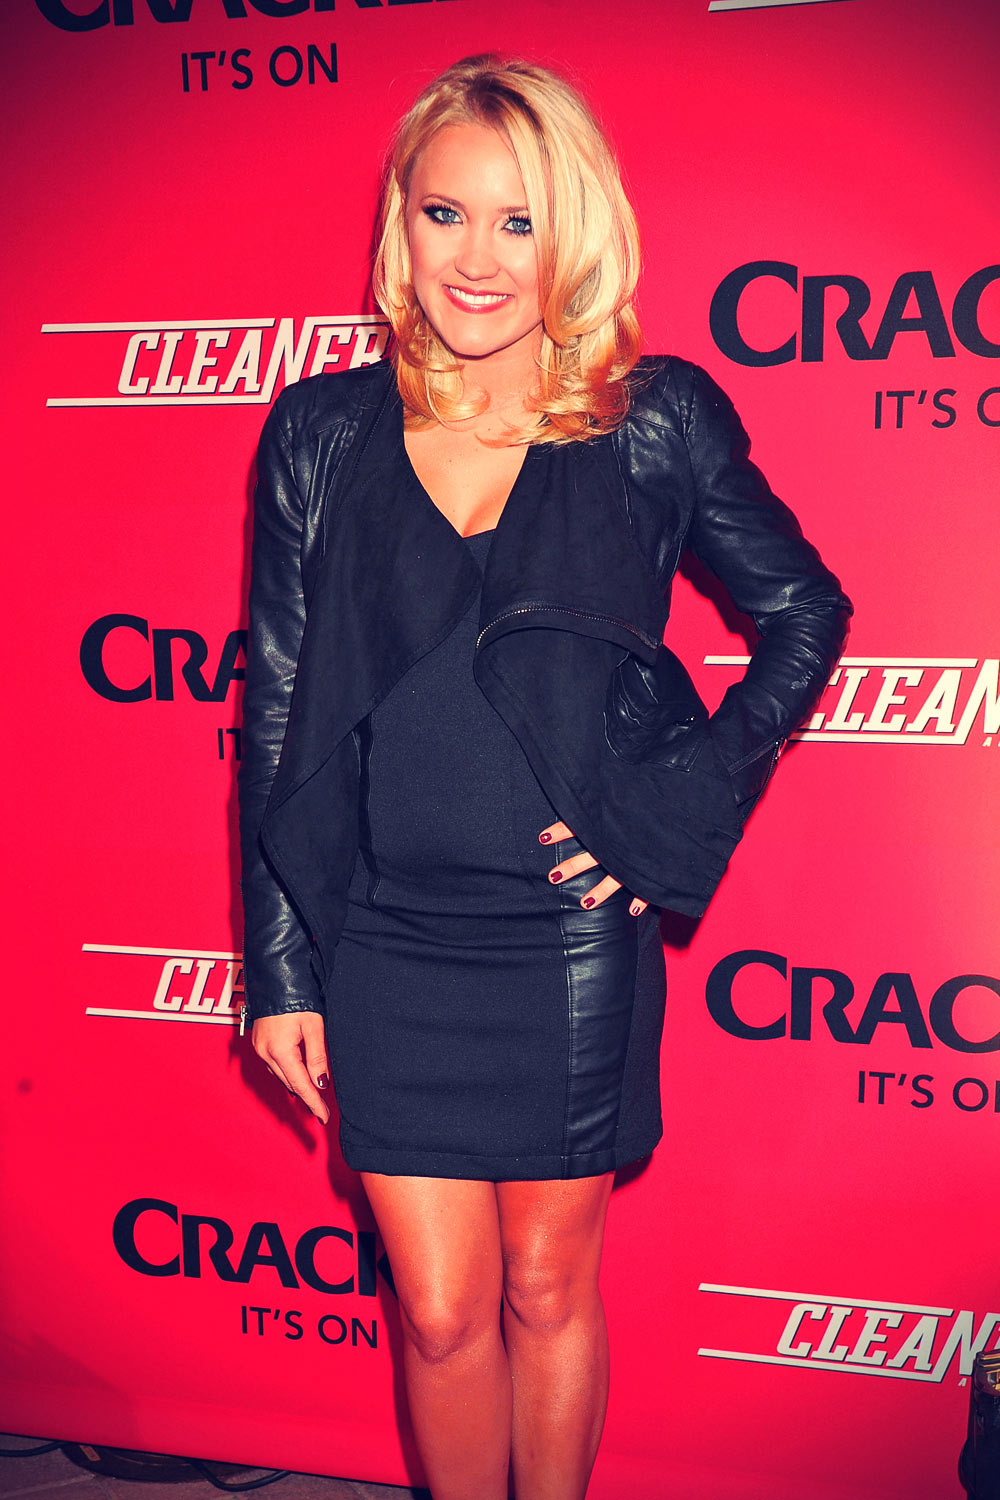 Emily Osment Premiere Of Crackle's New Original Digital Series Cleaners